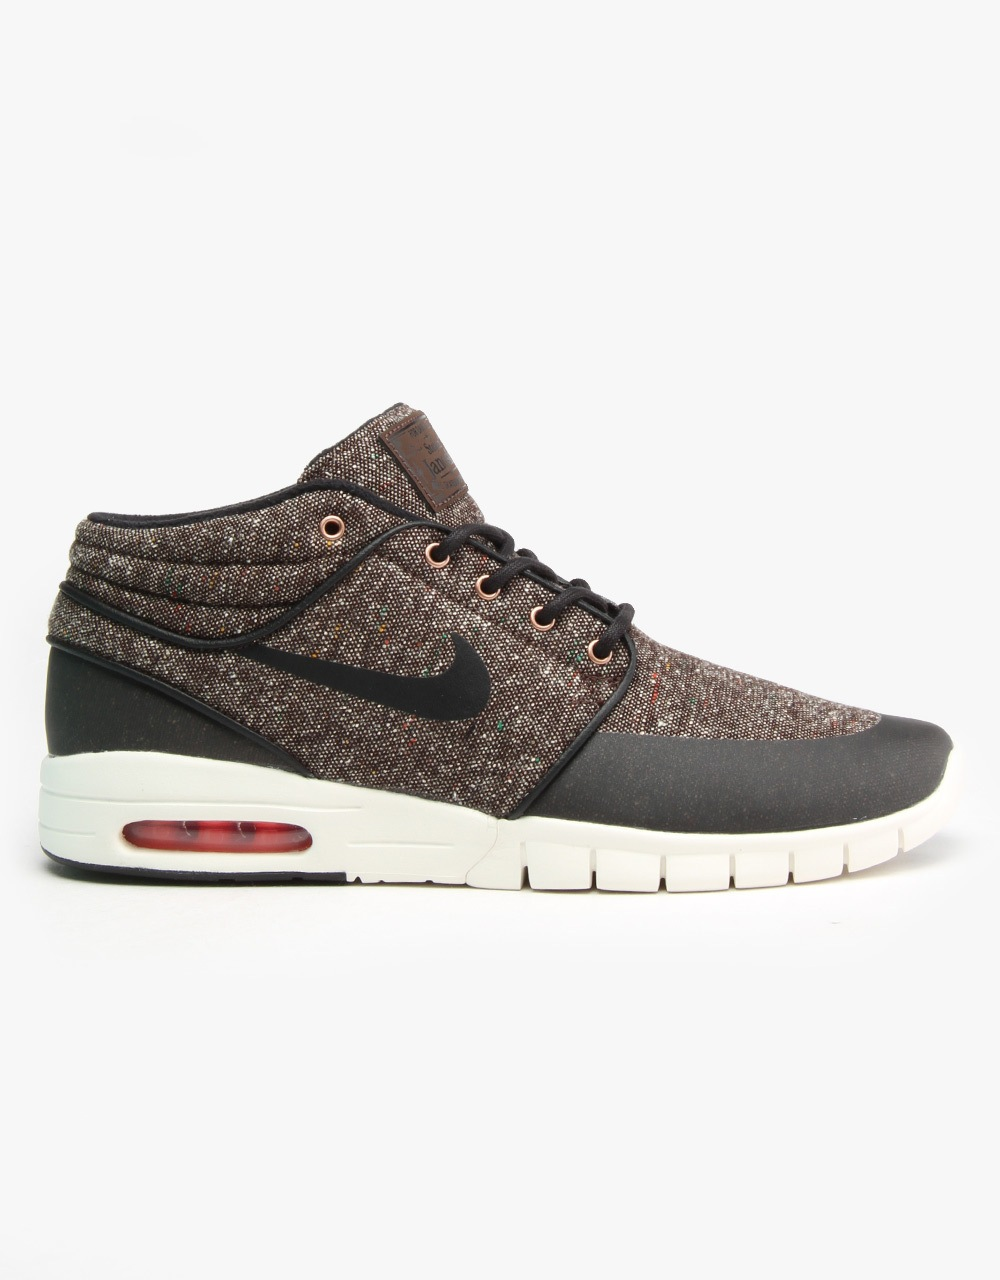 official photos 47003 61e7b Nike SB Stefan Janoski Max Mid Skate Shoes - Brq Brown Blk Crmsn-Sl   Nike  SB   Skate Shoes, Clothing   Accessories   Route One